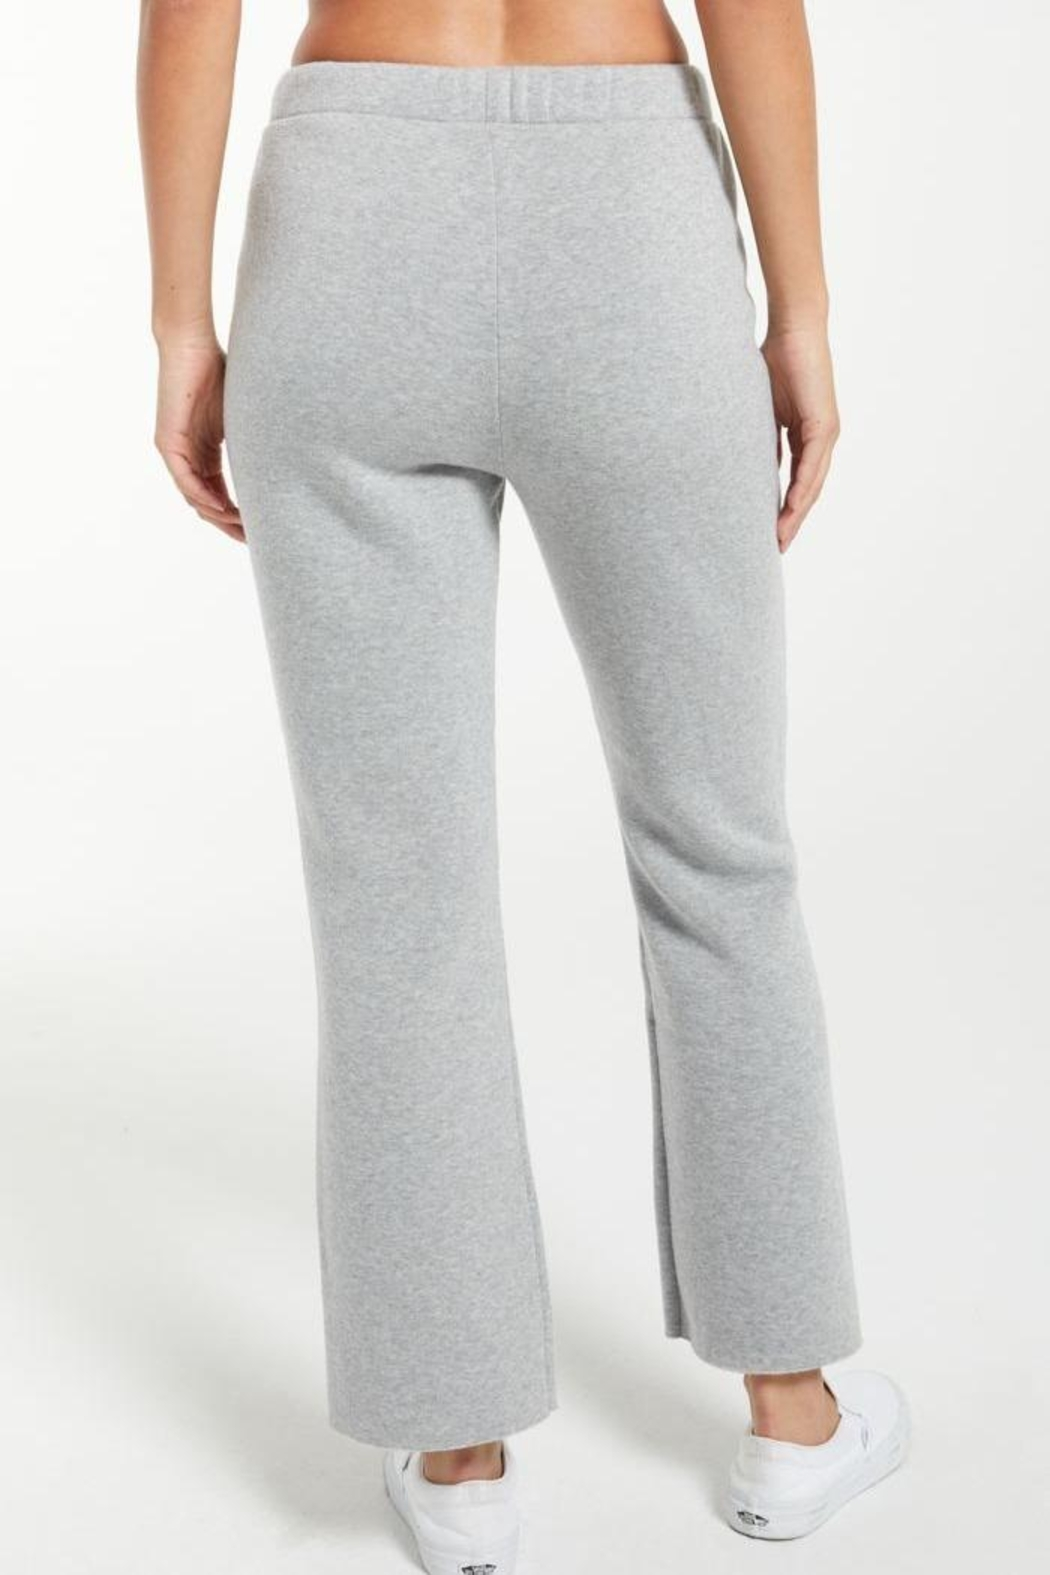 z supply Peyton Cropped Sweatpant - Back Cropped Image